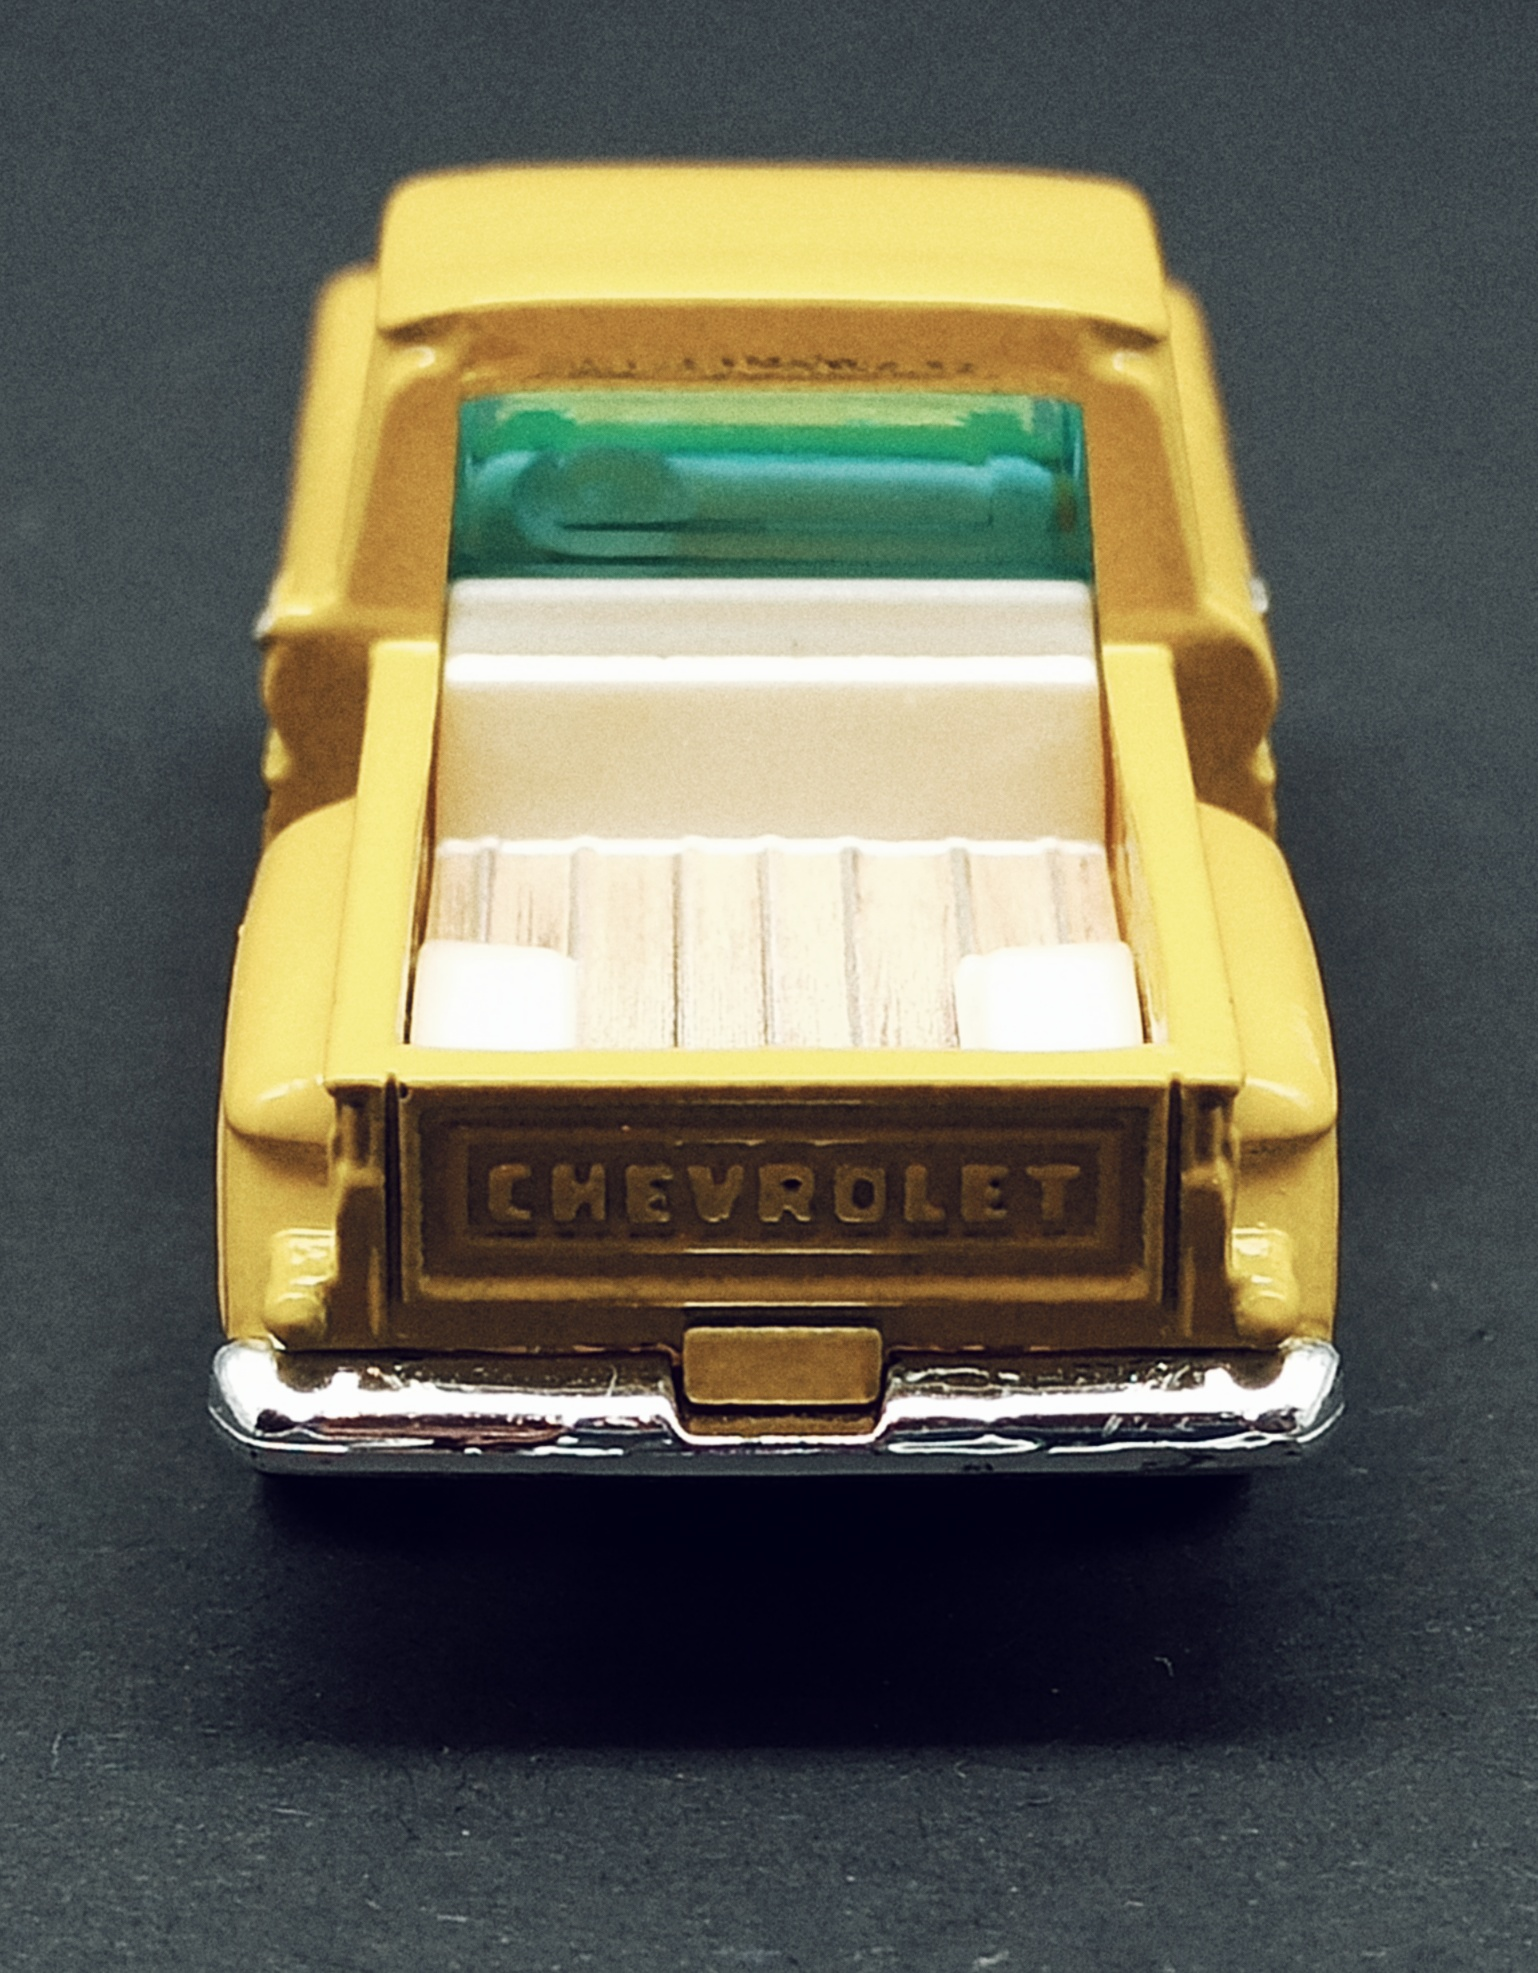 Matchbox Collectors Series '63 Chevy C10 Pickup Truck 1963 (GRK24) 2021 (3/20) yellow (Mooneyes) back view